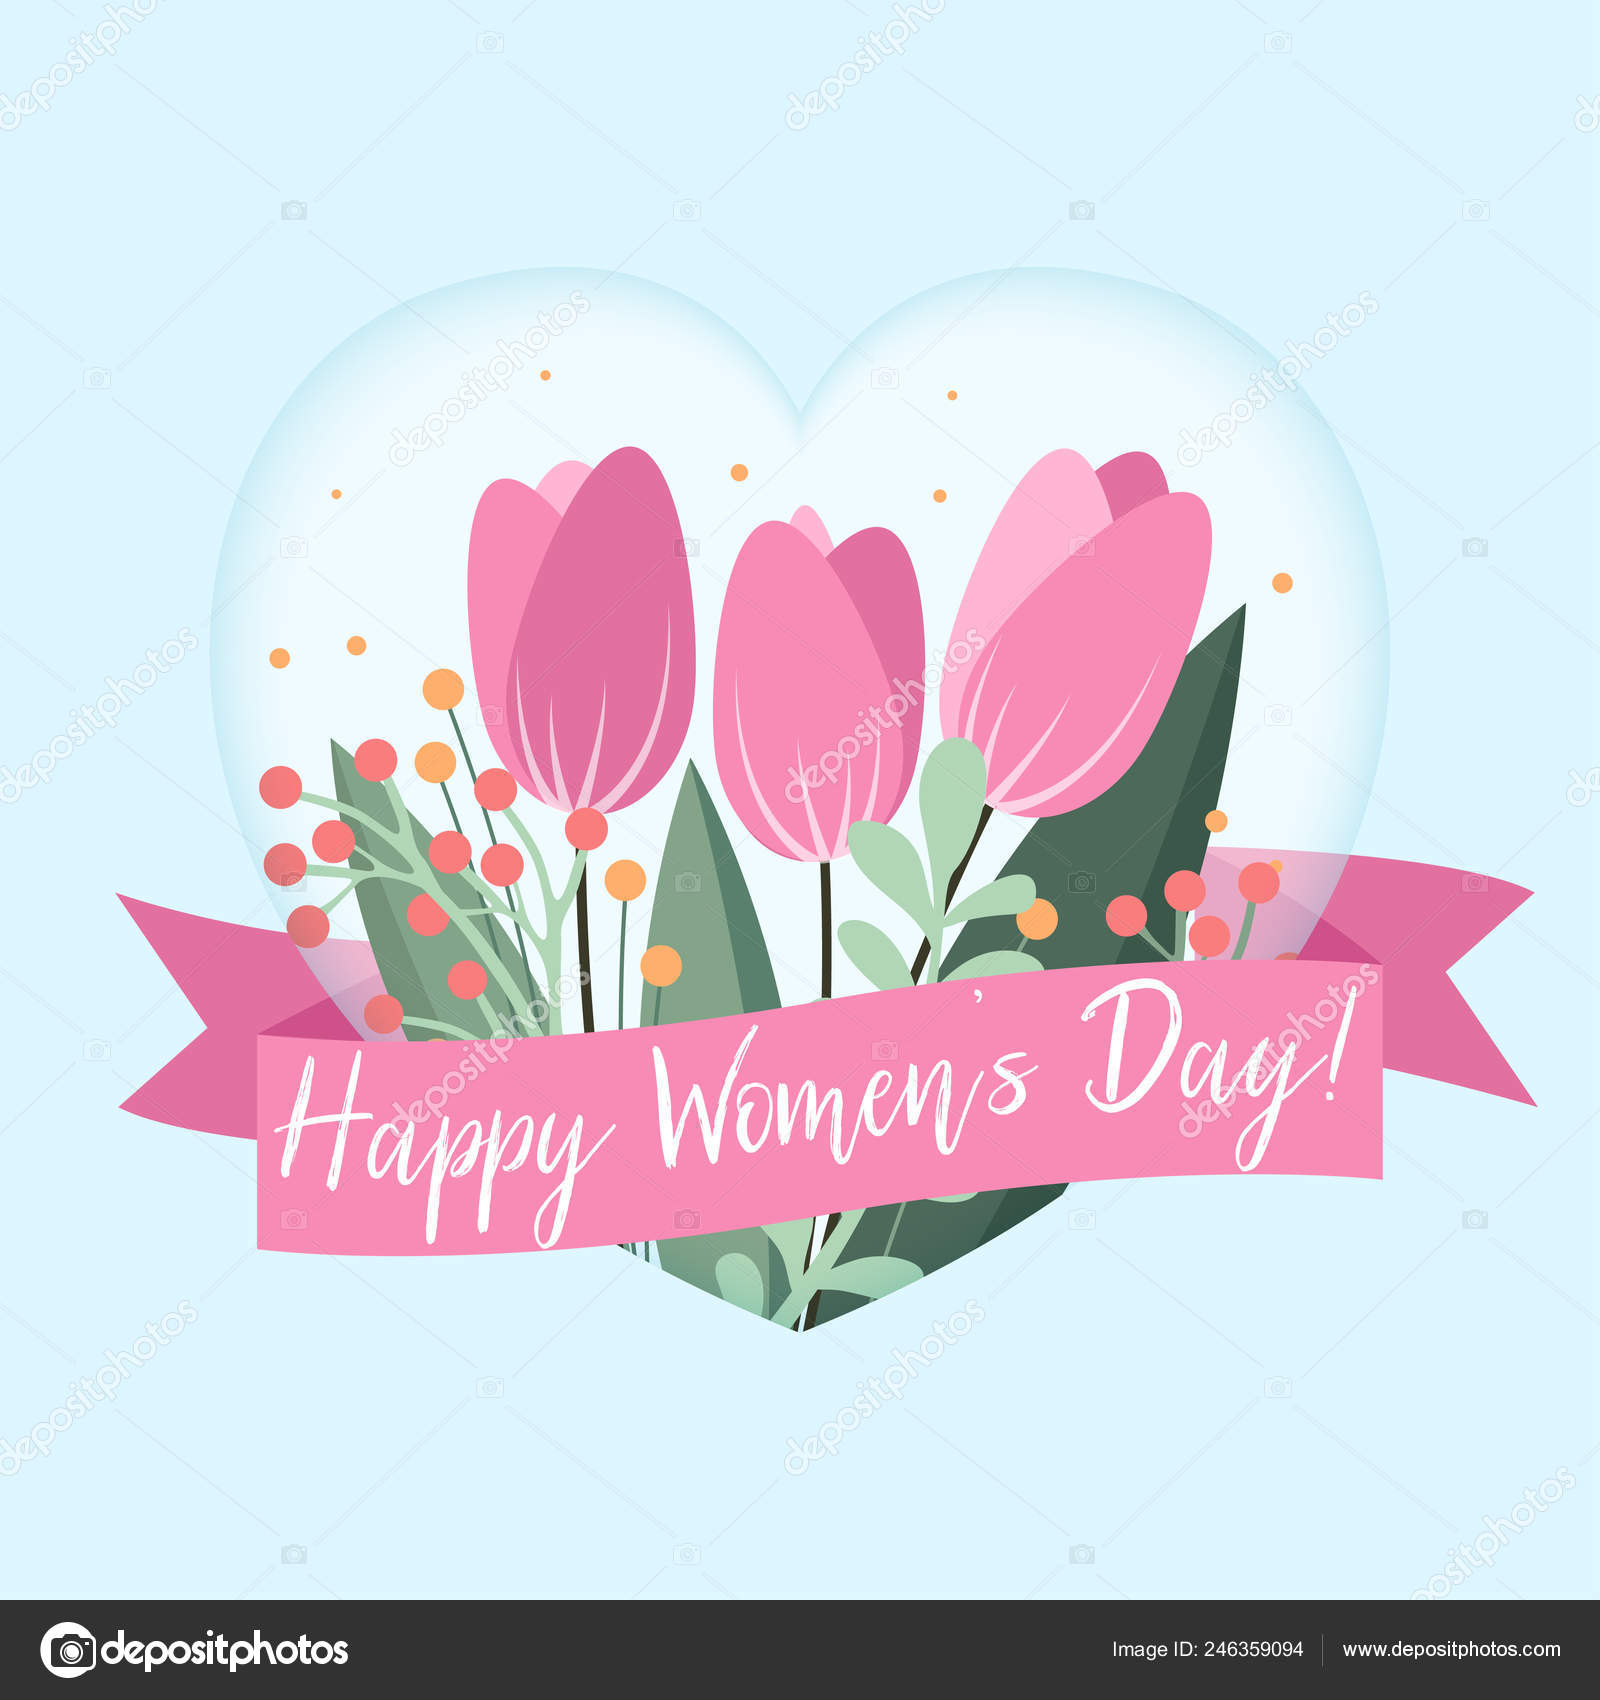 Happy Women Day Greetings Card Floral Elements Elegant Flower Design